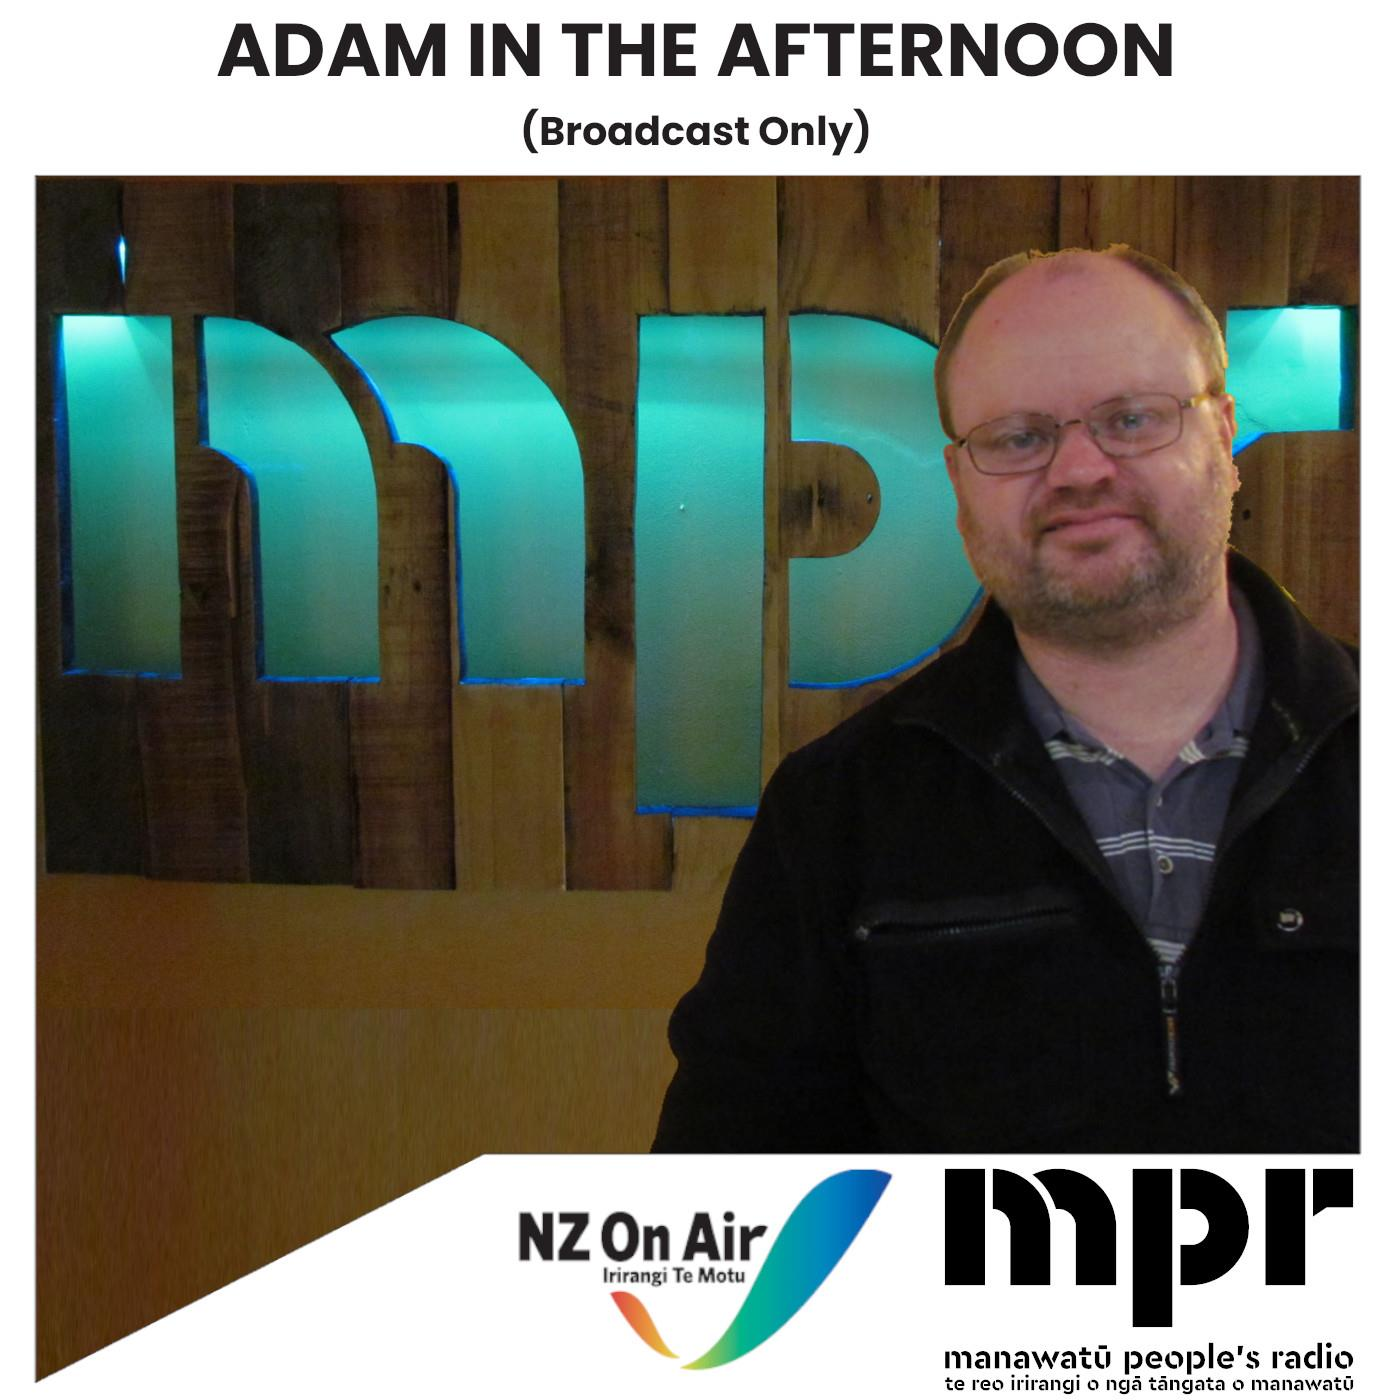 Adam In The Afternoon - Continuity (Broadcast Only)